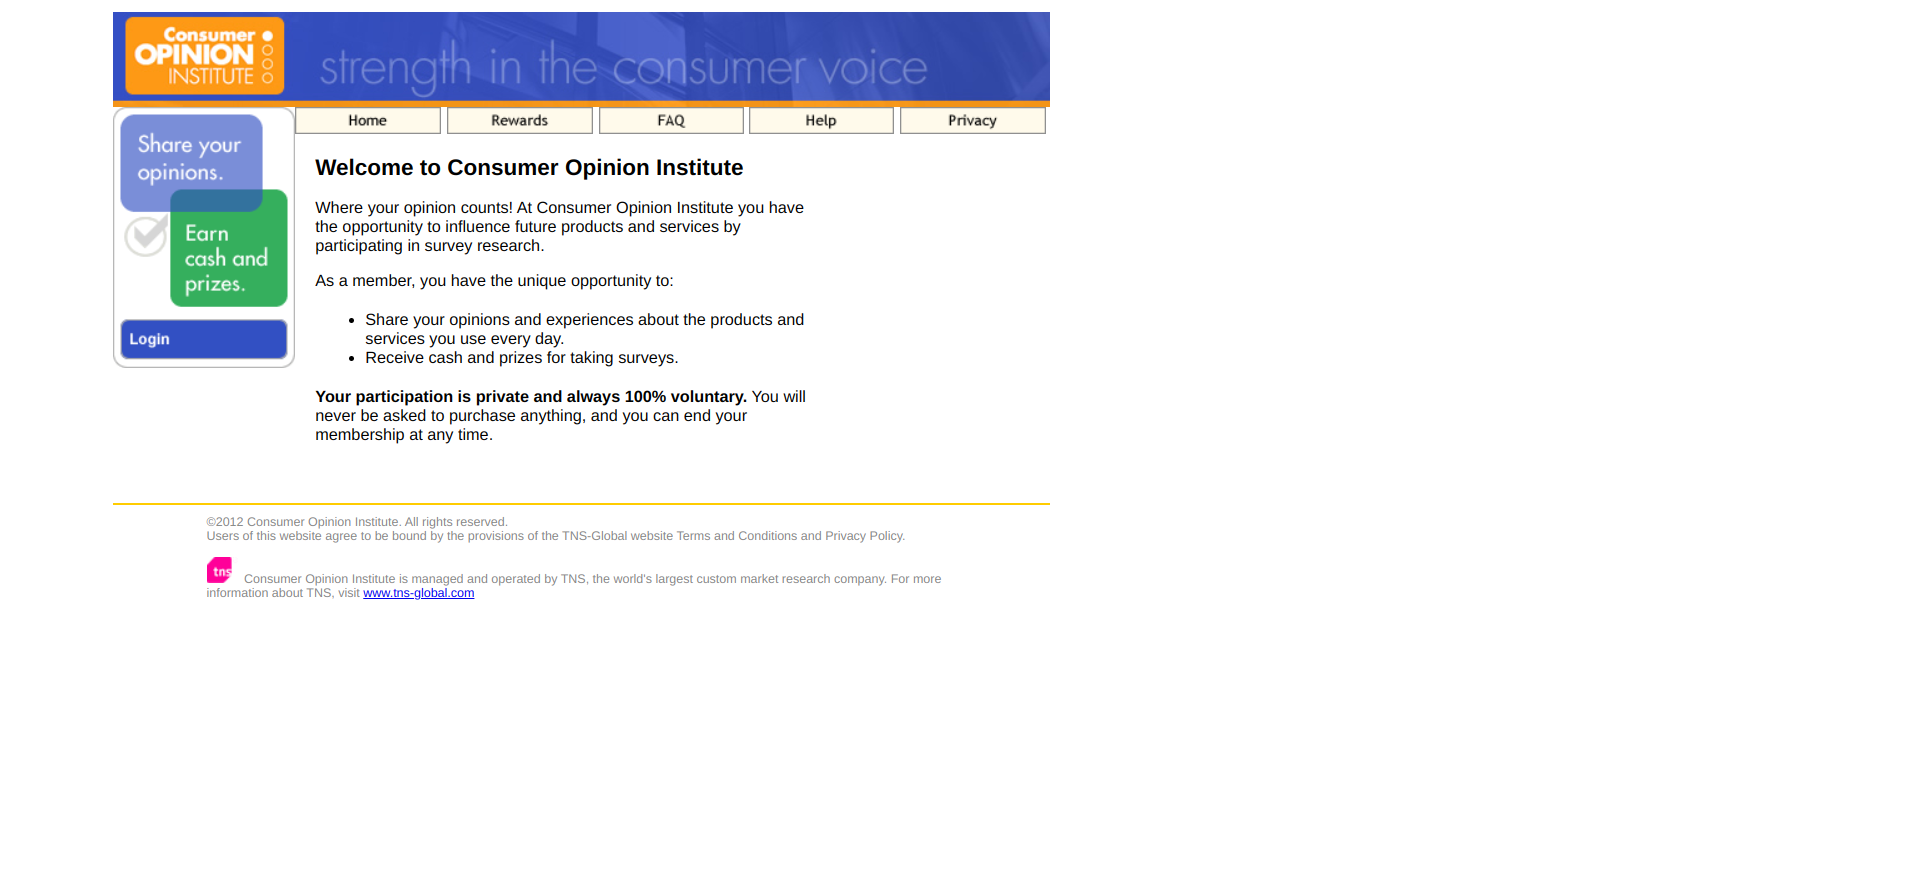 Is Consumer Opinion Institute a Scam or Legit